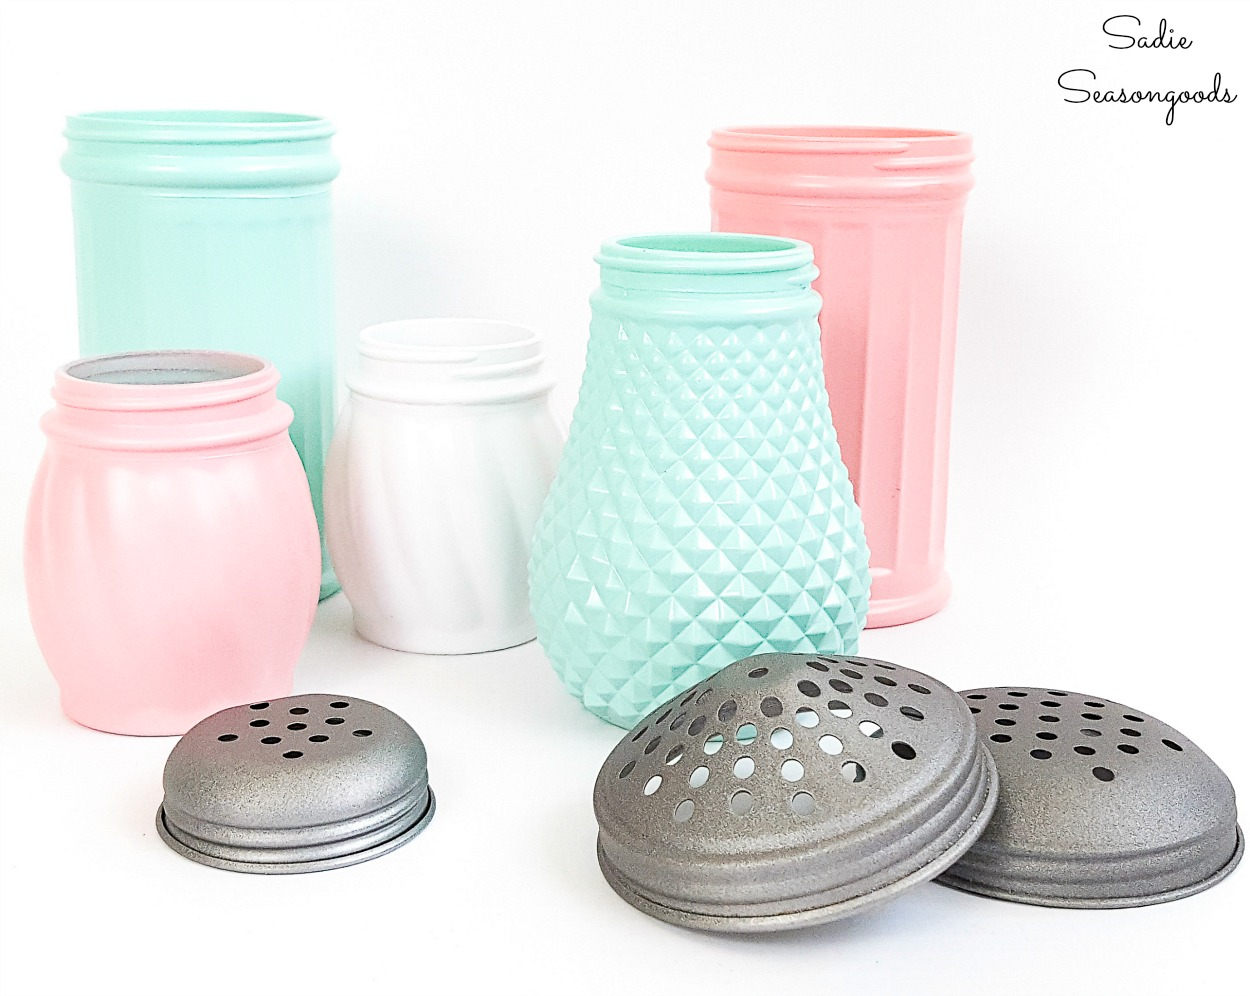 Cheese shakers that look like the pink milk glass and green milk glass